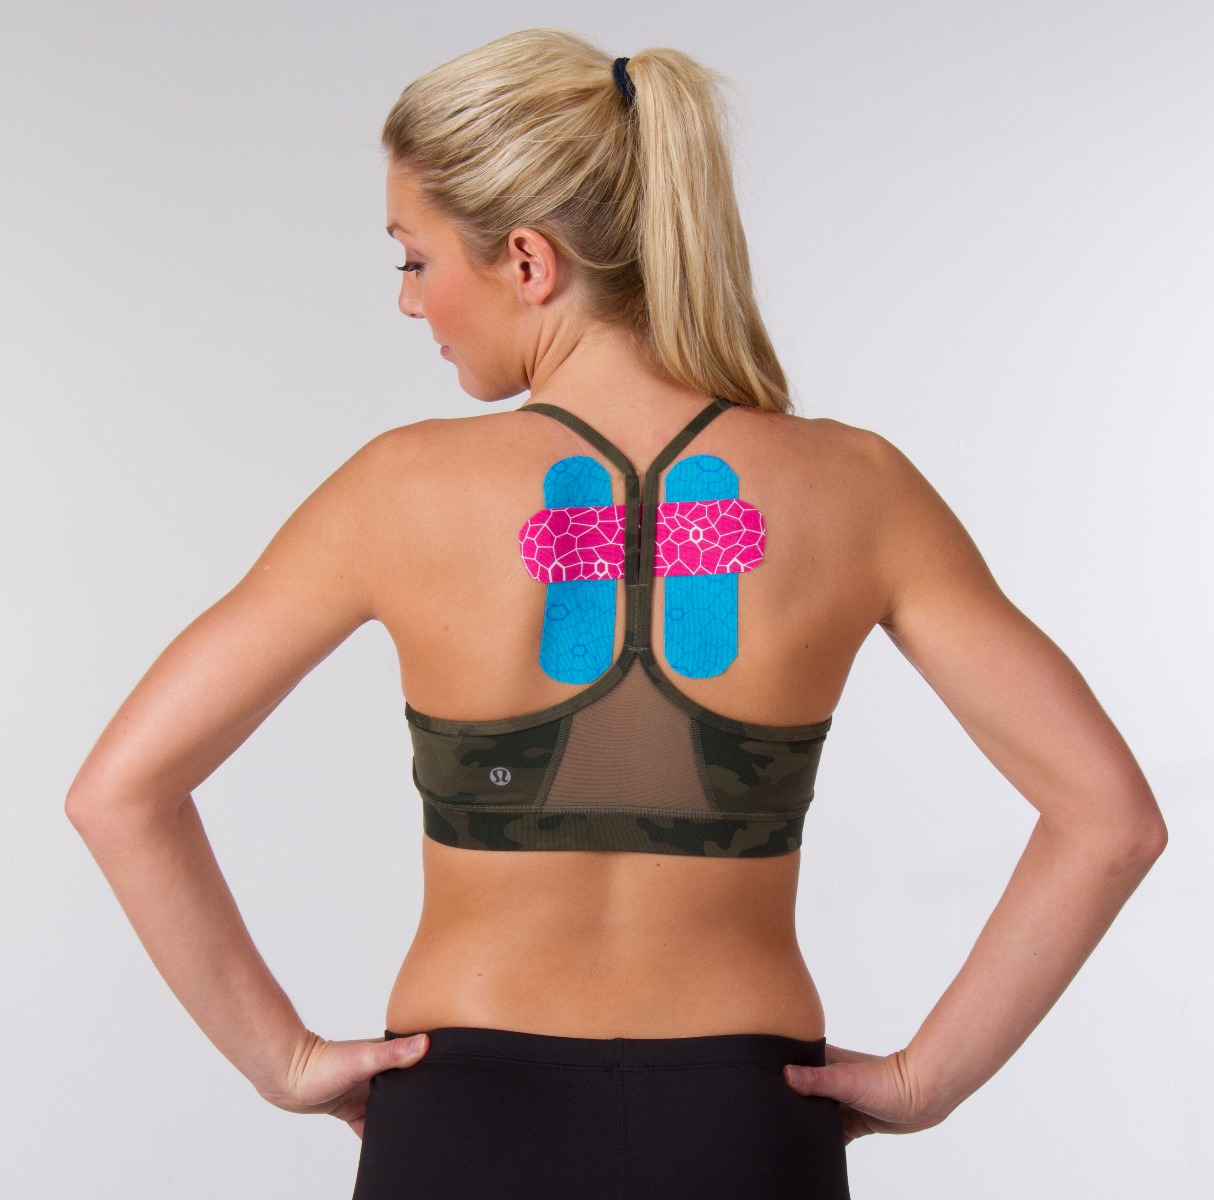 woman with tape on back